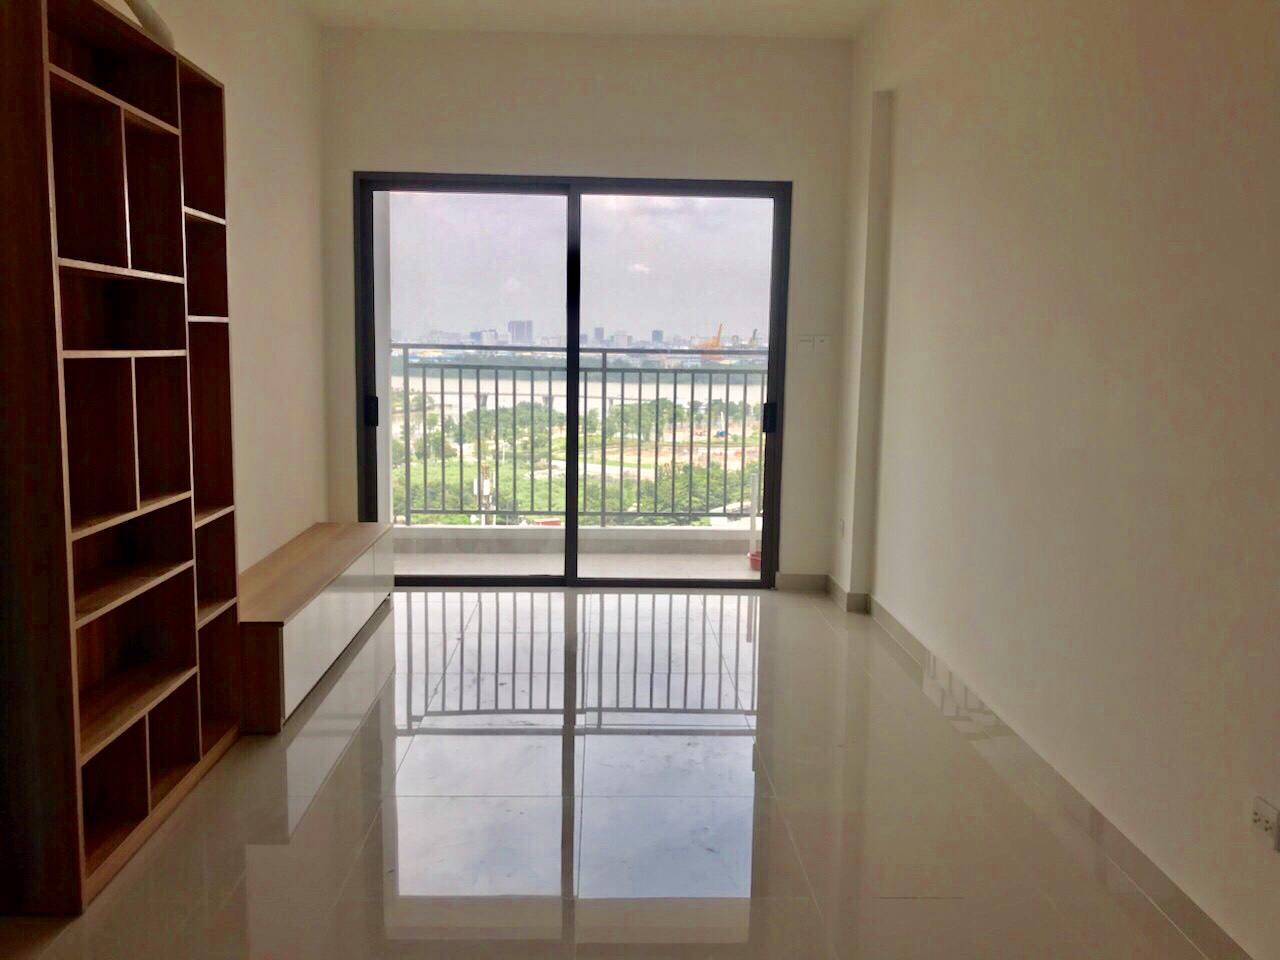 Apartment for rent D227510 (6)